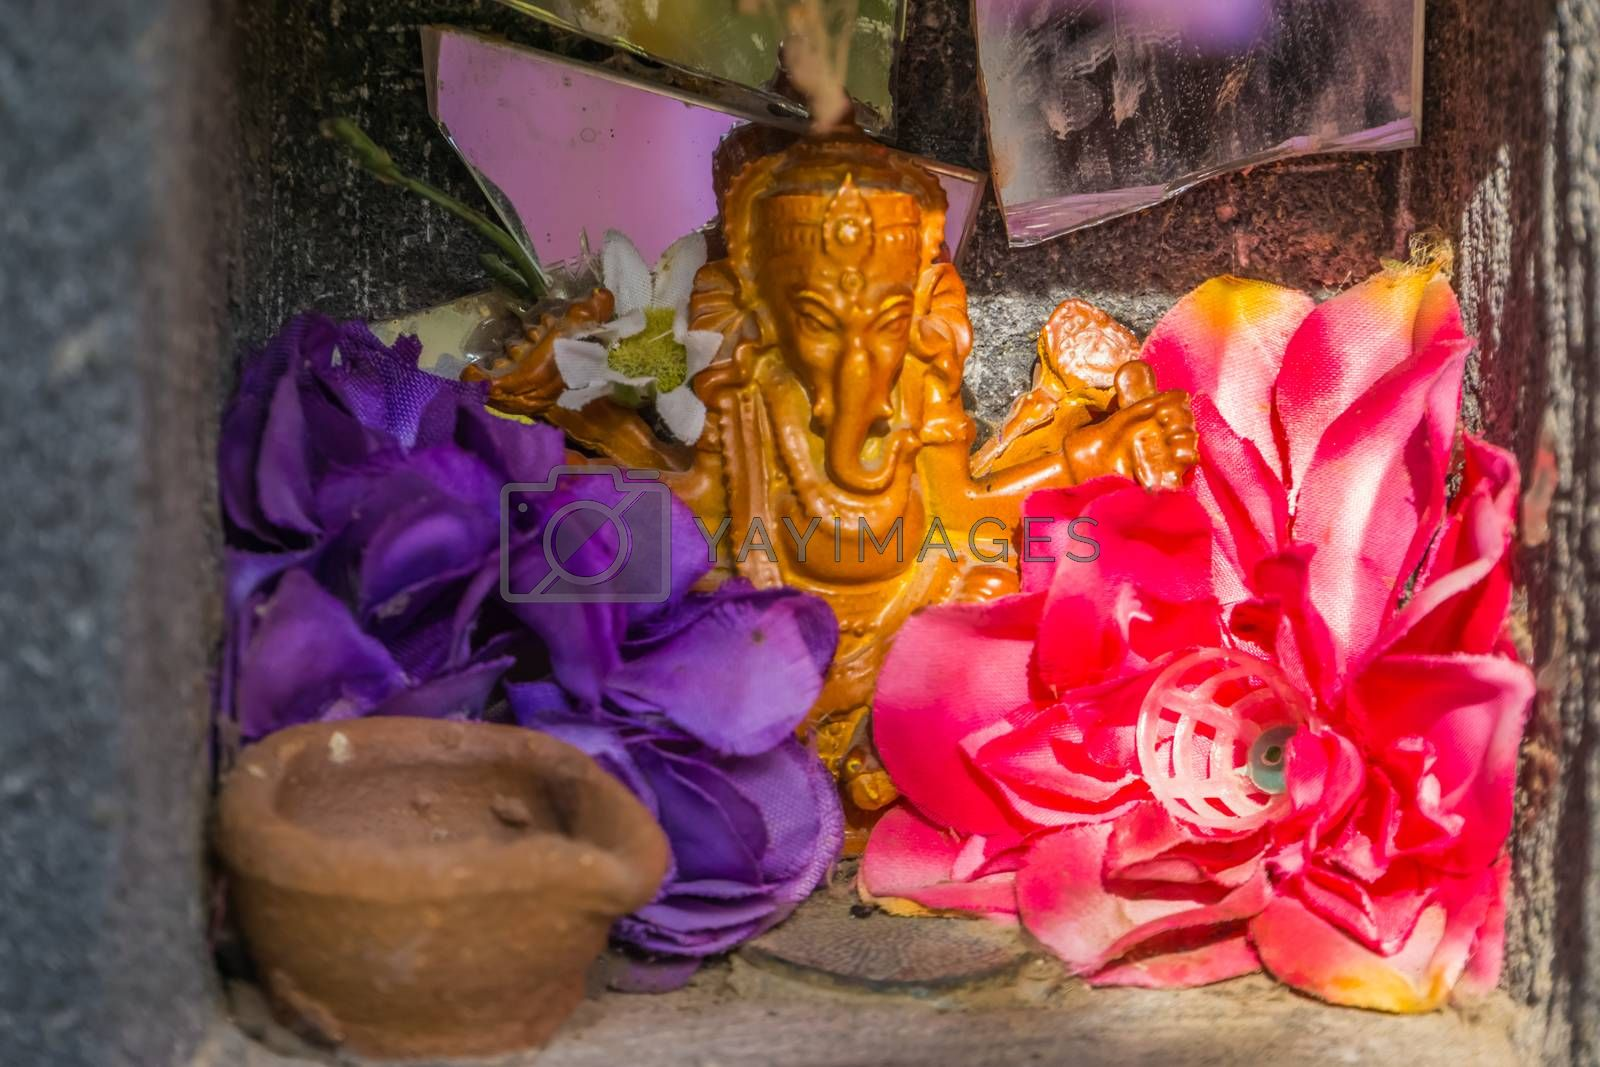 beautiful small Indian altar with flowers and a Ganesha sculpture, Religious background by charlotte Bleijenberg